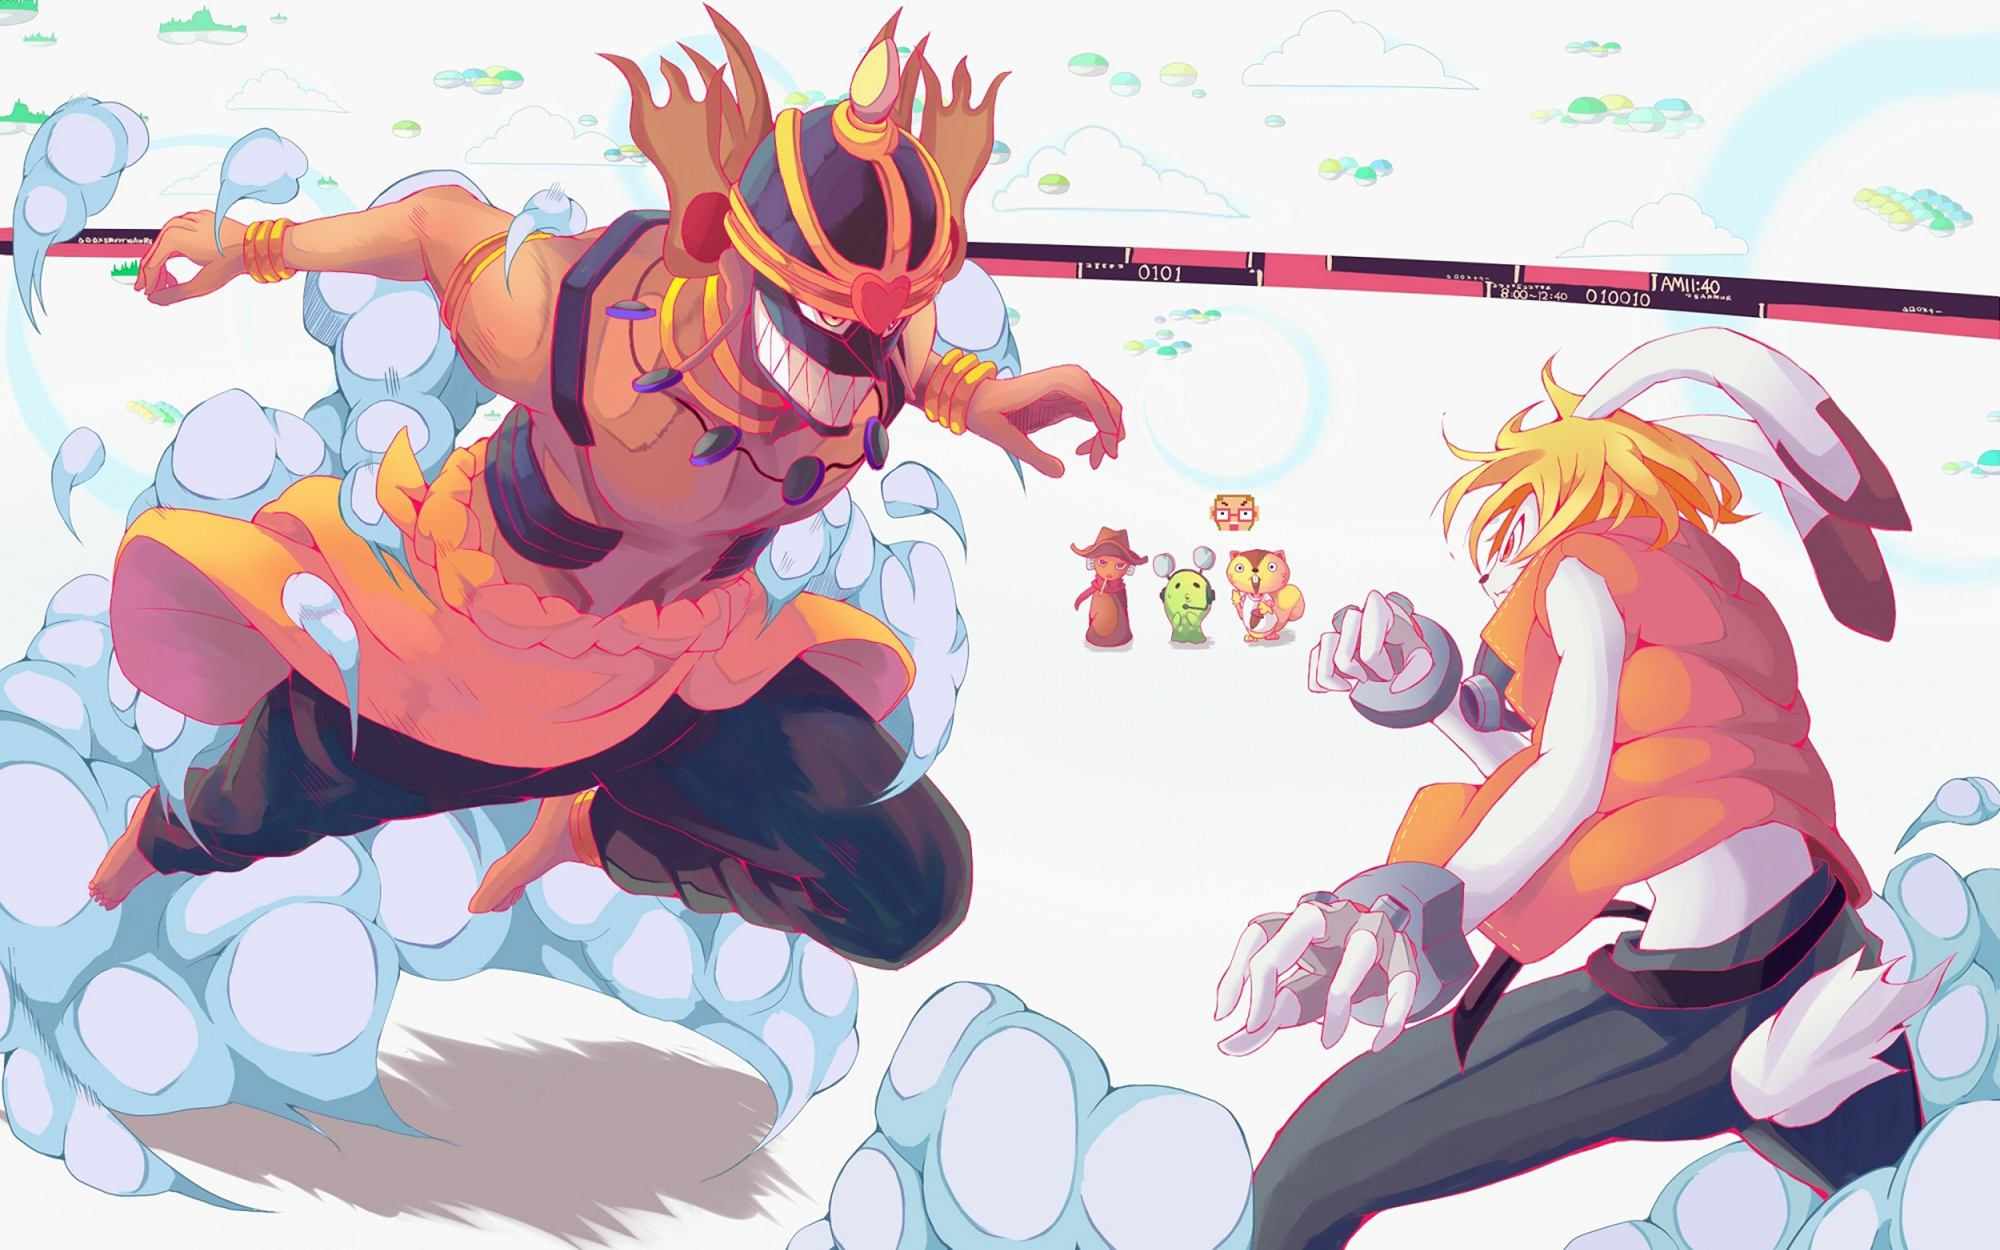 battle time! Summer Wars